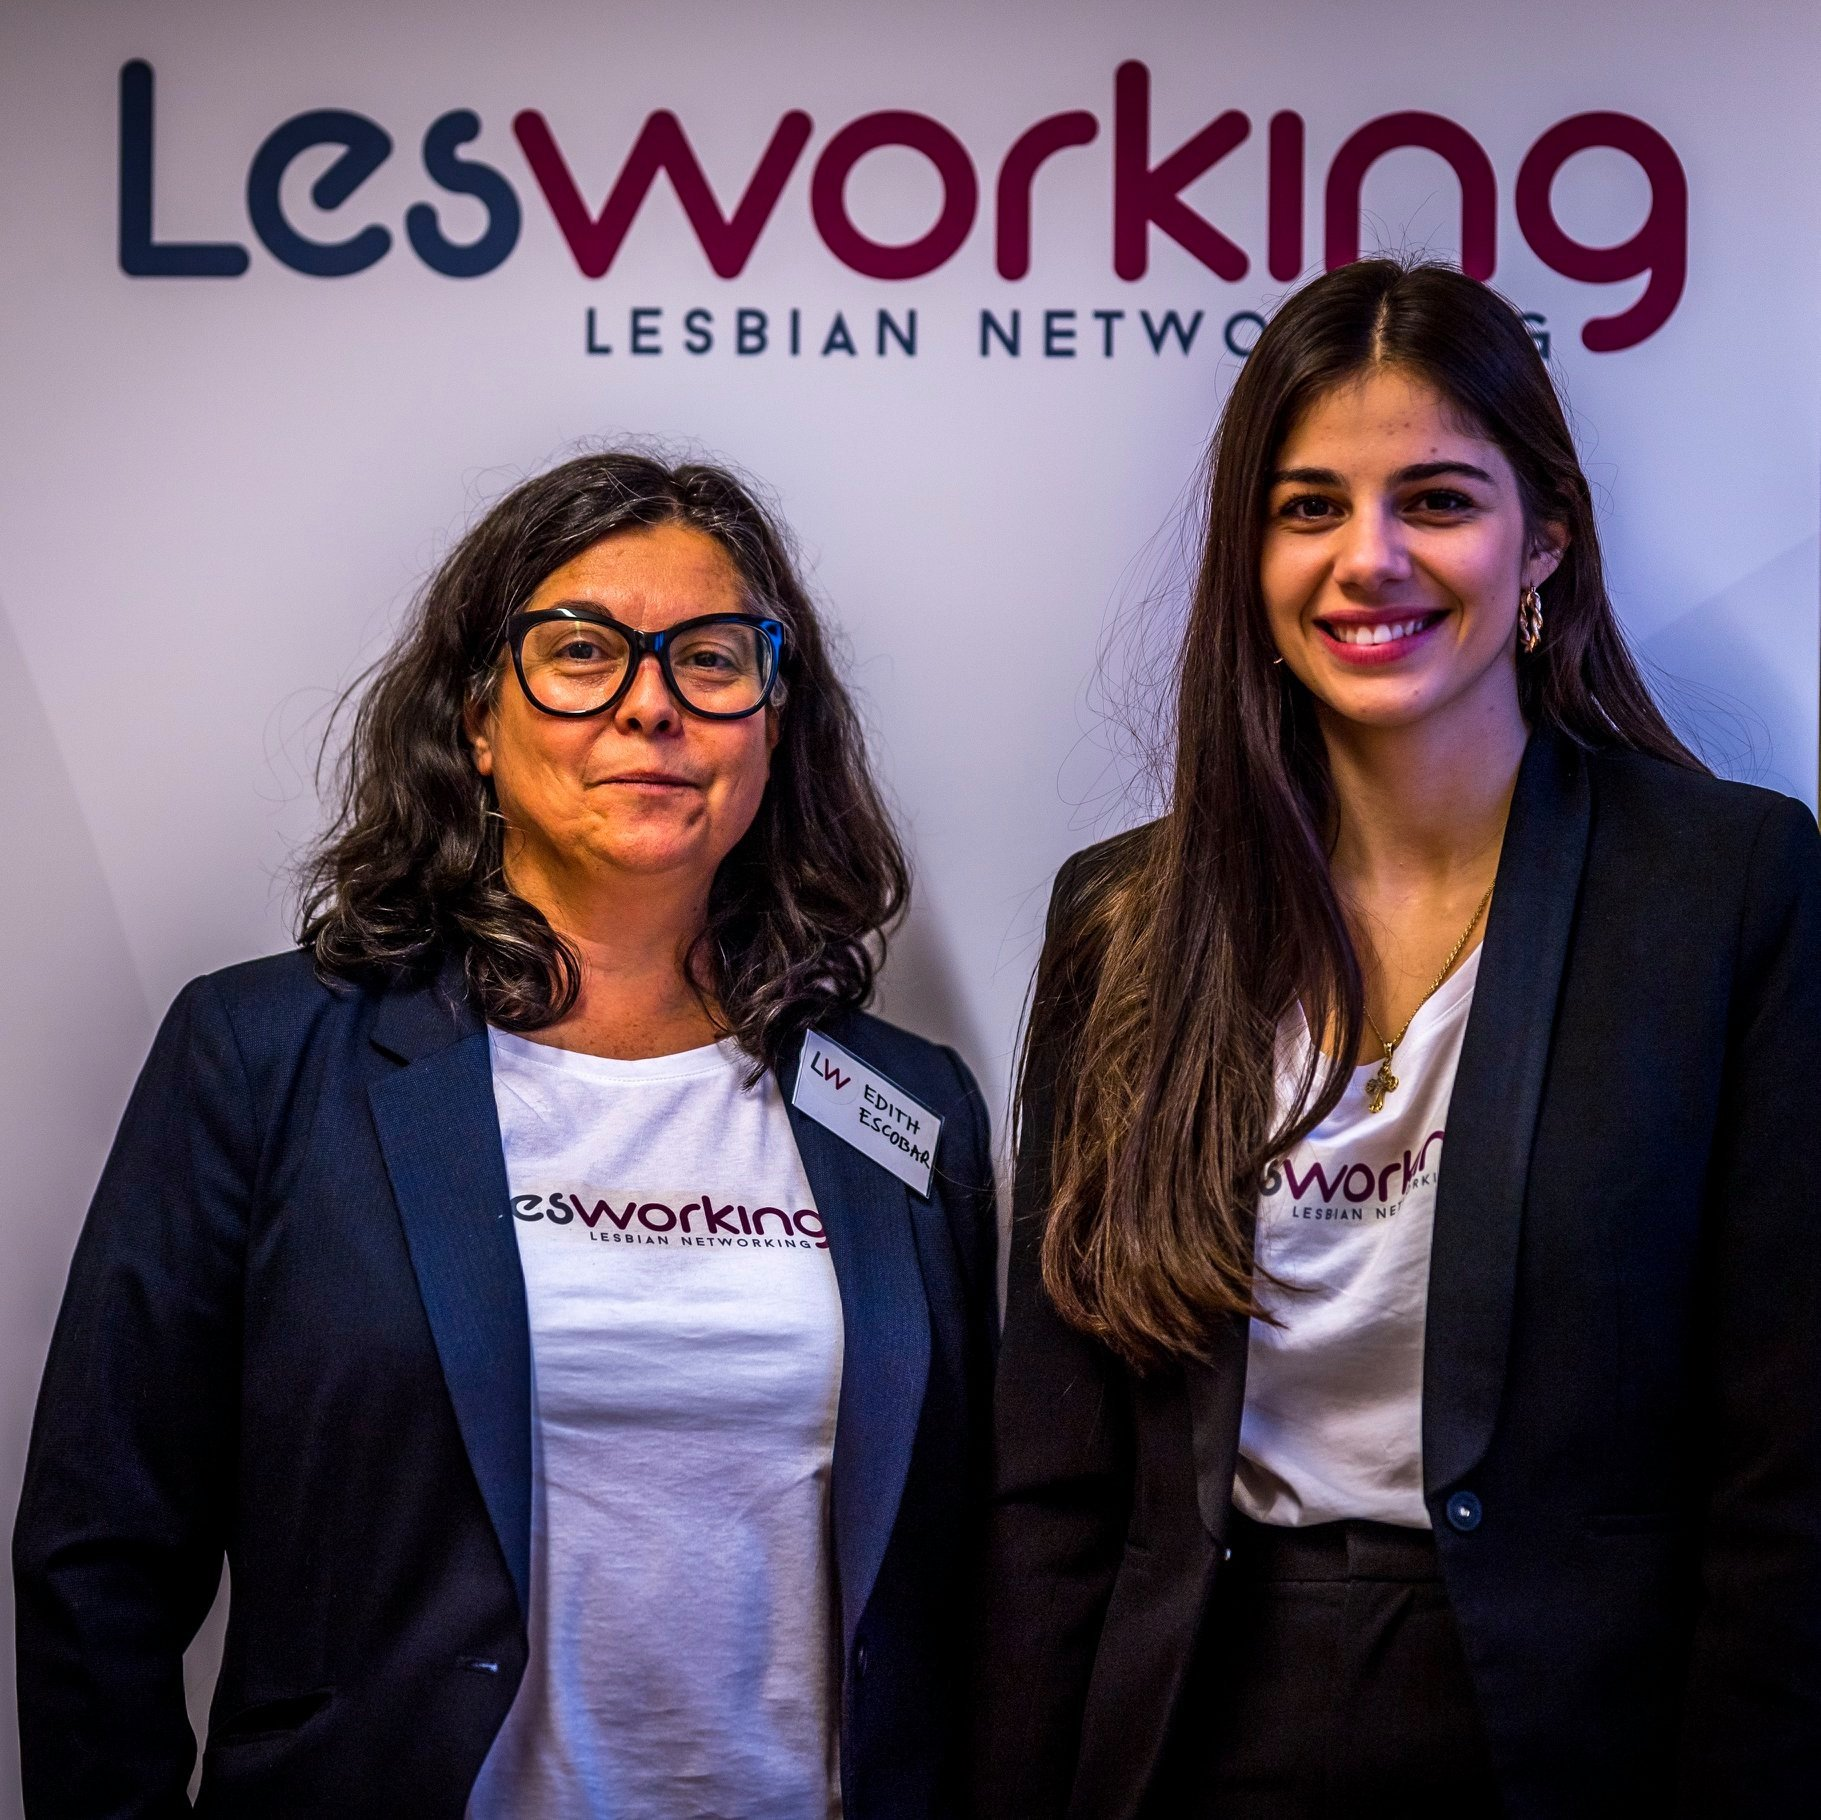 Edith Escobar & Micaela kallaris - Lesworking